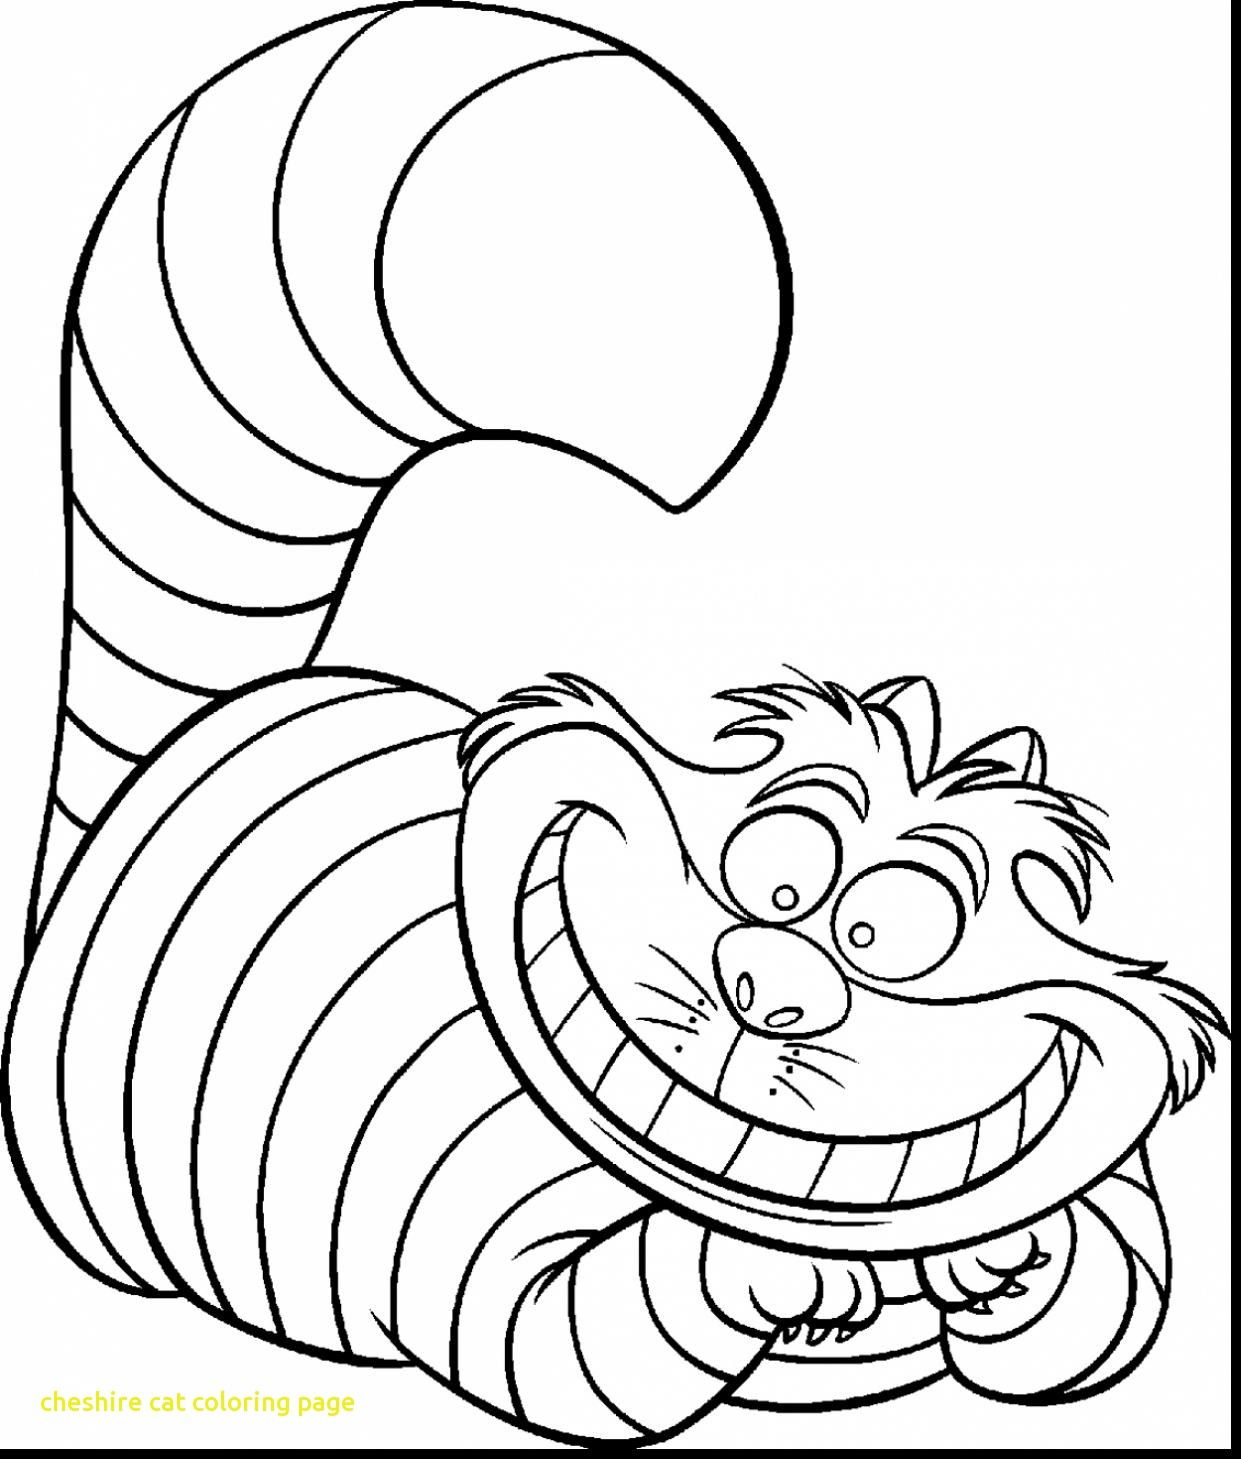 Cheshire Cat Coloring Page With Astounding Alice